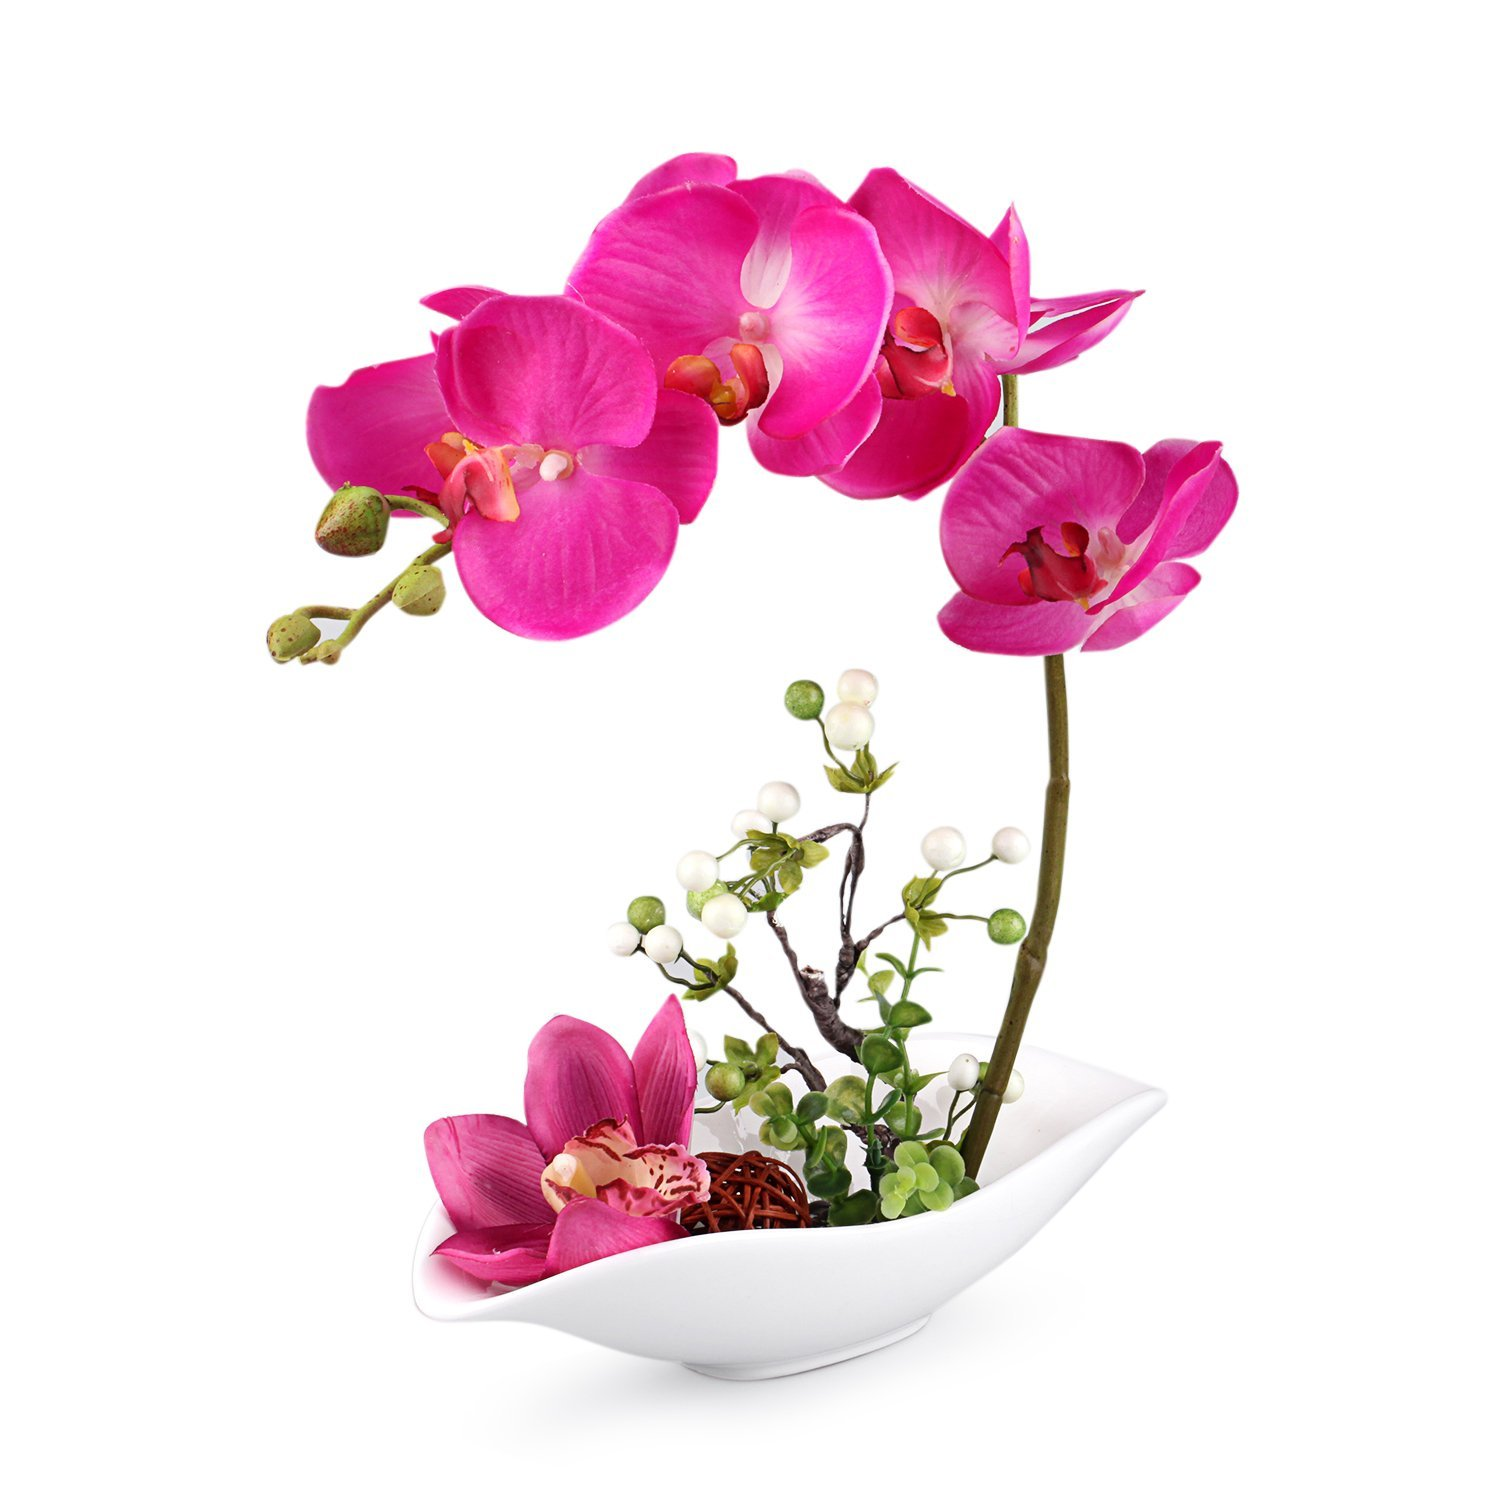 Louis Garden 7 Head Artificial Flowers - Phalaenopsis Bonsai Simulation, Available in 4 Colors